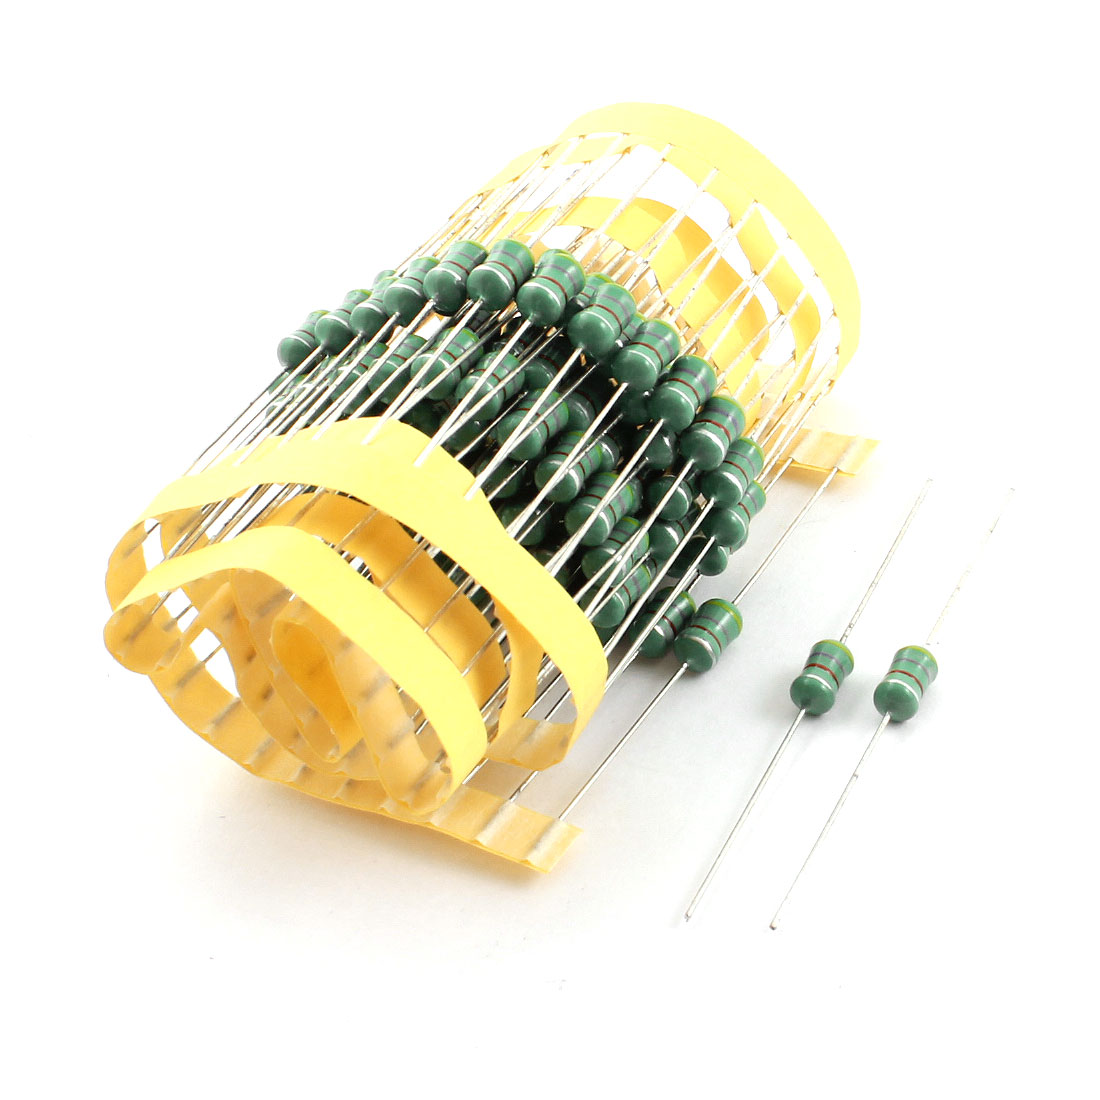 100 Pcs 4.7uH 5x10mm 0510 1W Power 10% Tolerance Axial Leaded Through Hole Mount Color Ring Inductors for PCB Board